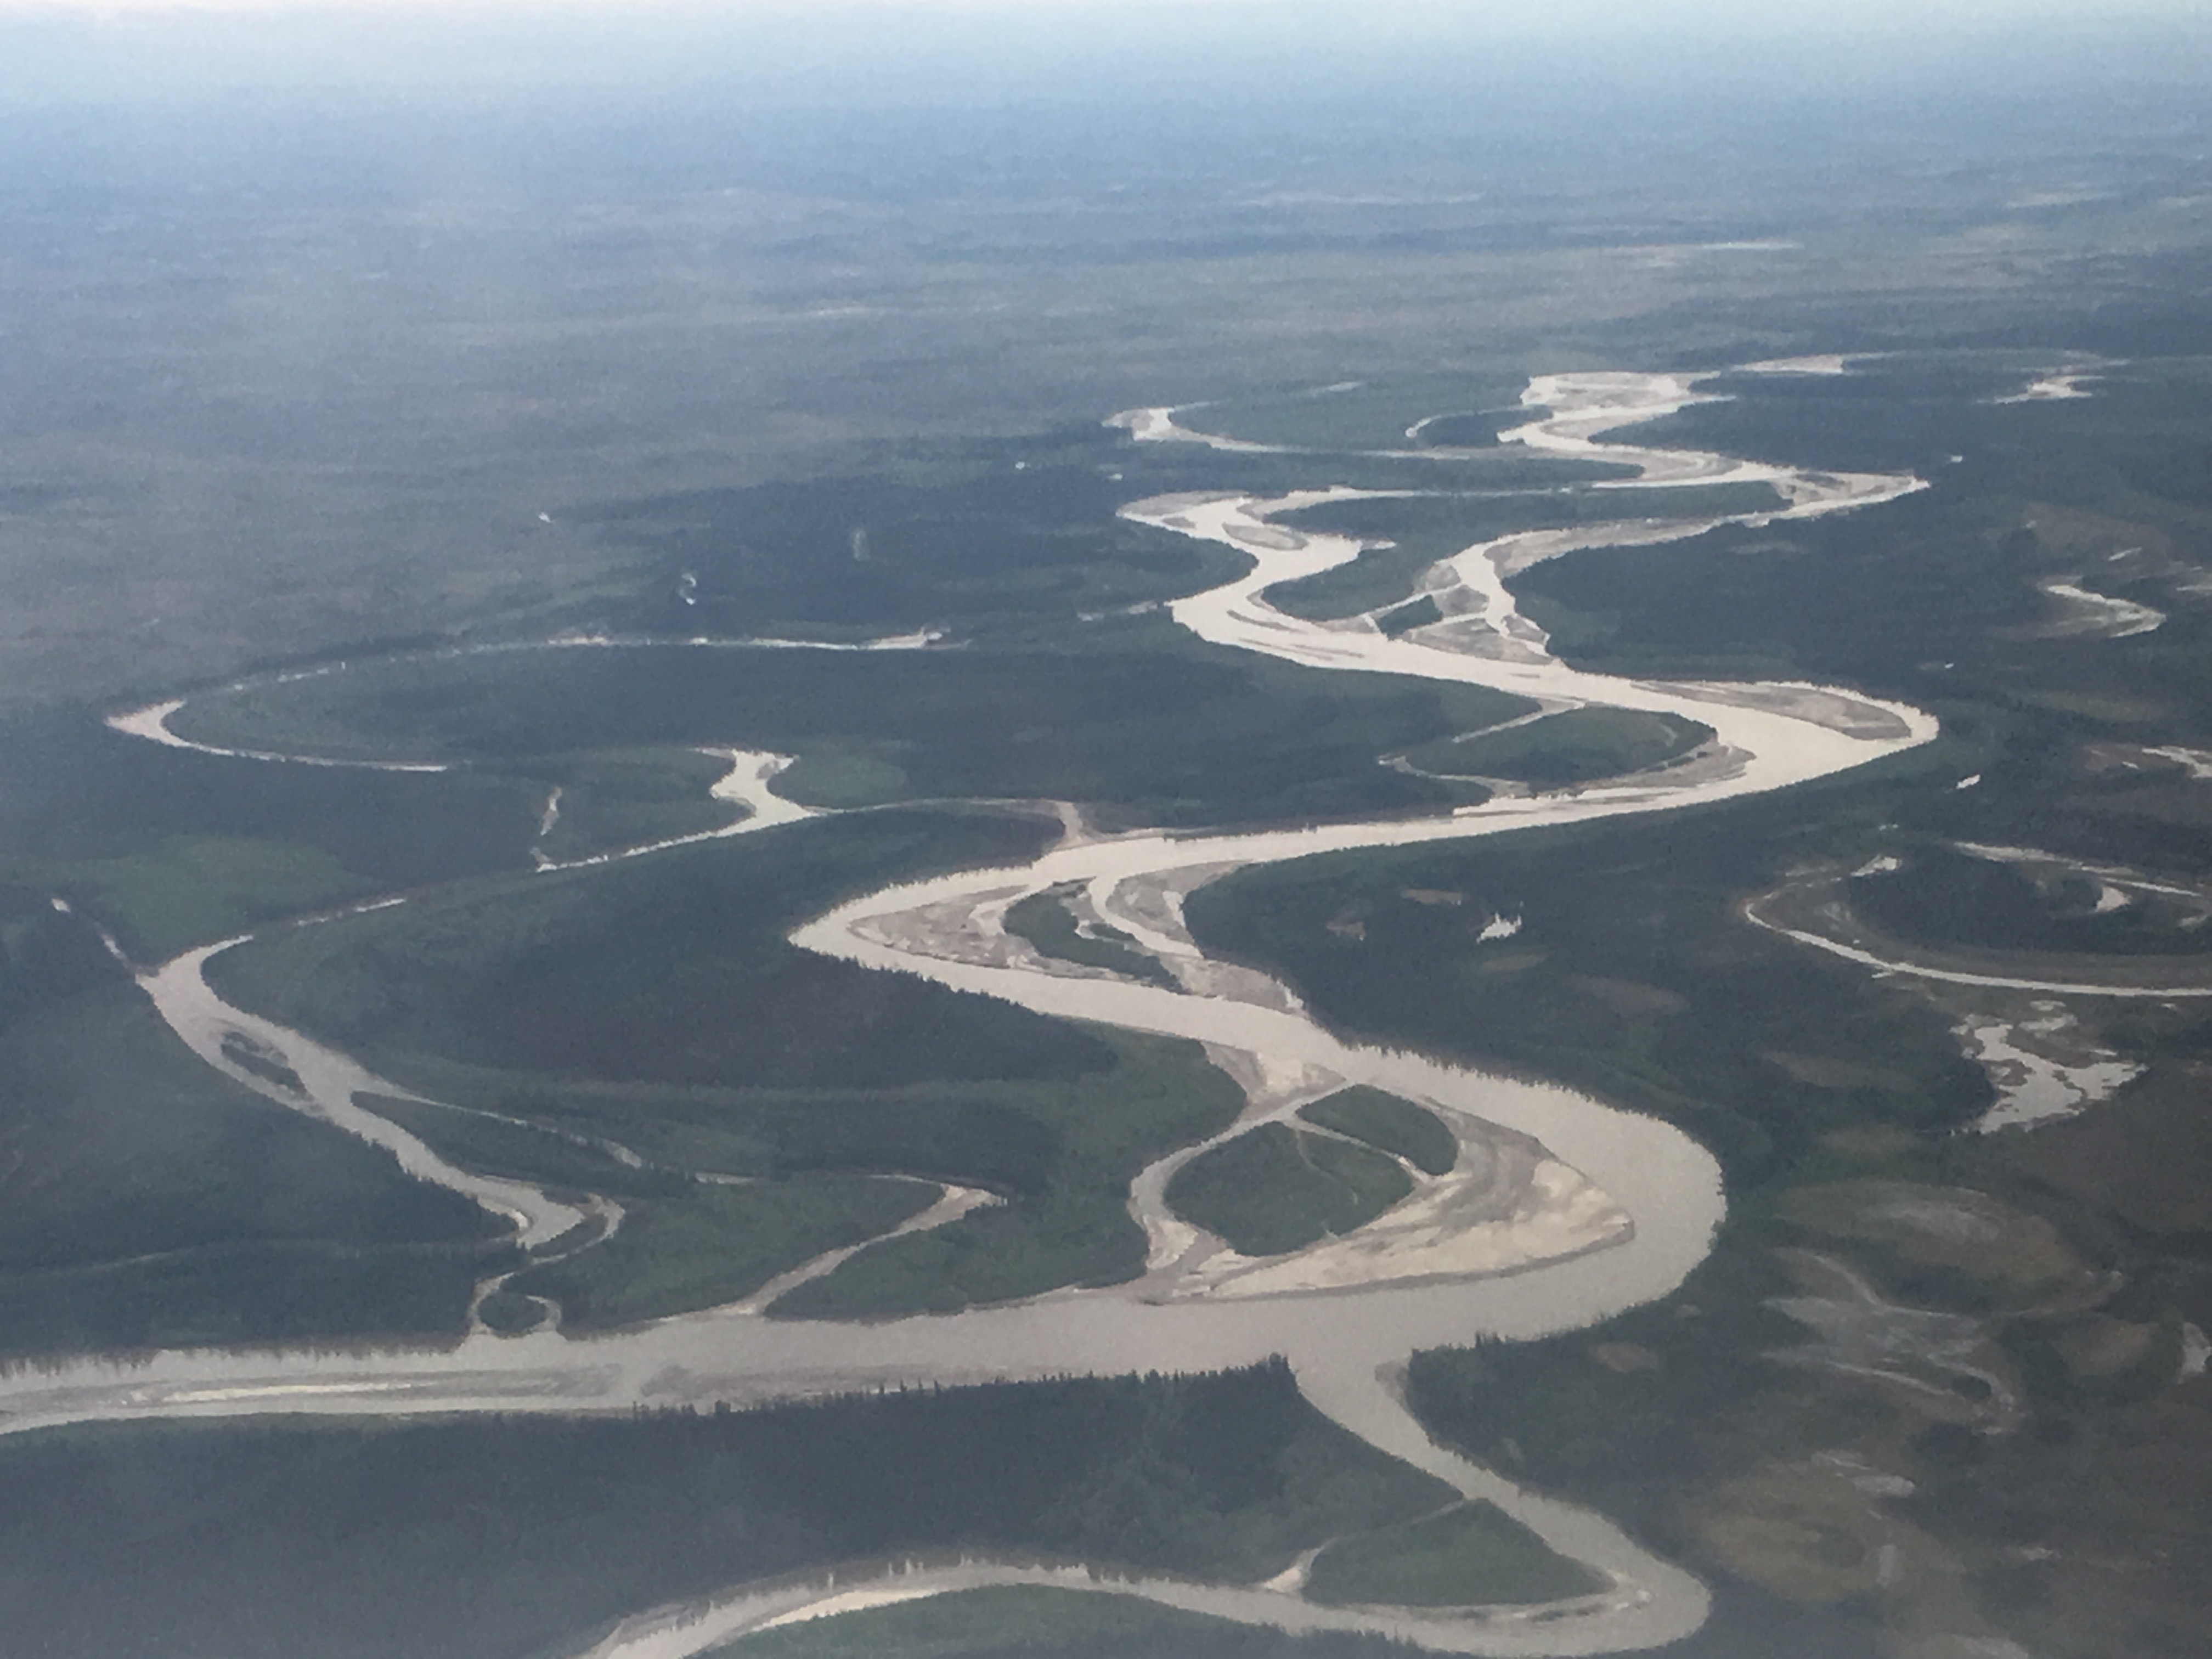 Alaska's Tanana River as seen from one of the ABoVE campaign's NASA planes